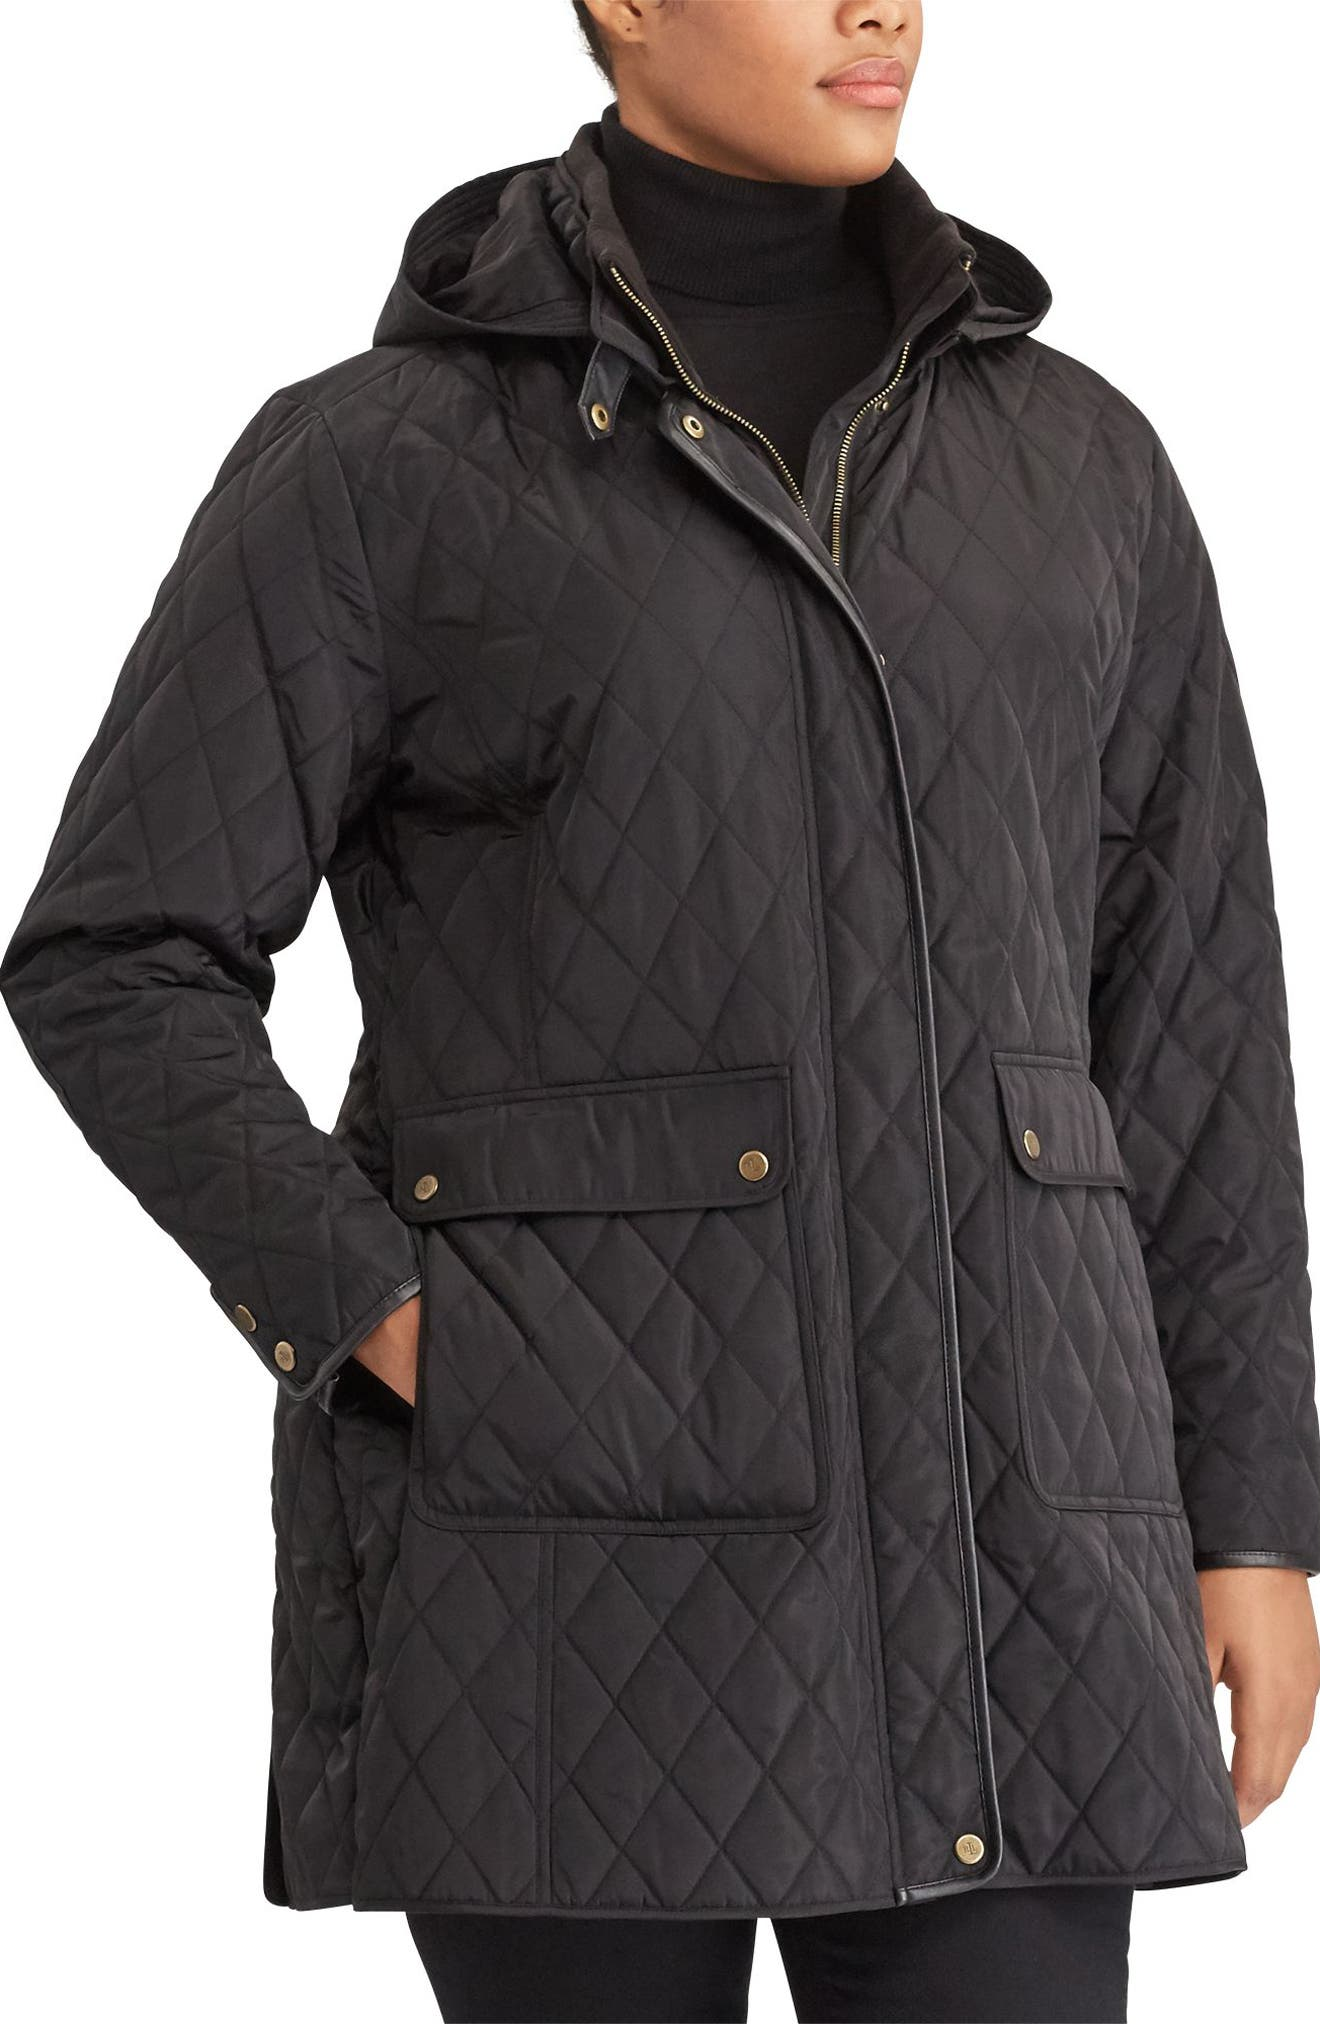 Alternate Image 1 Selected - Lauren Ralph Lauren Diamond Quilted Jacket with Faux Leather Trim